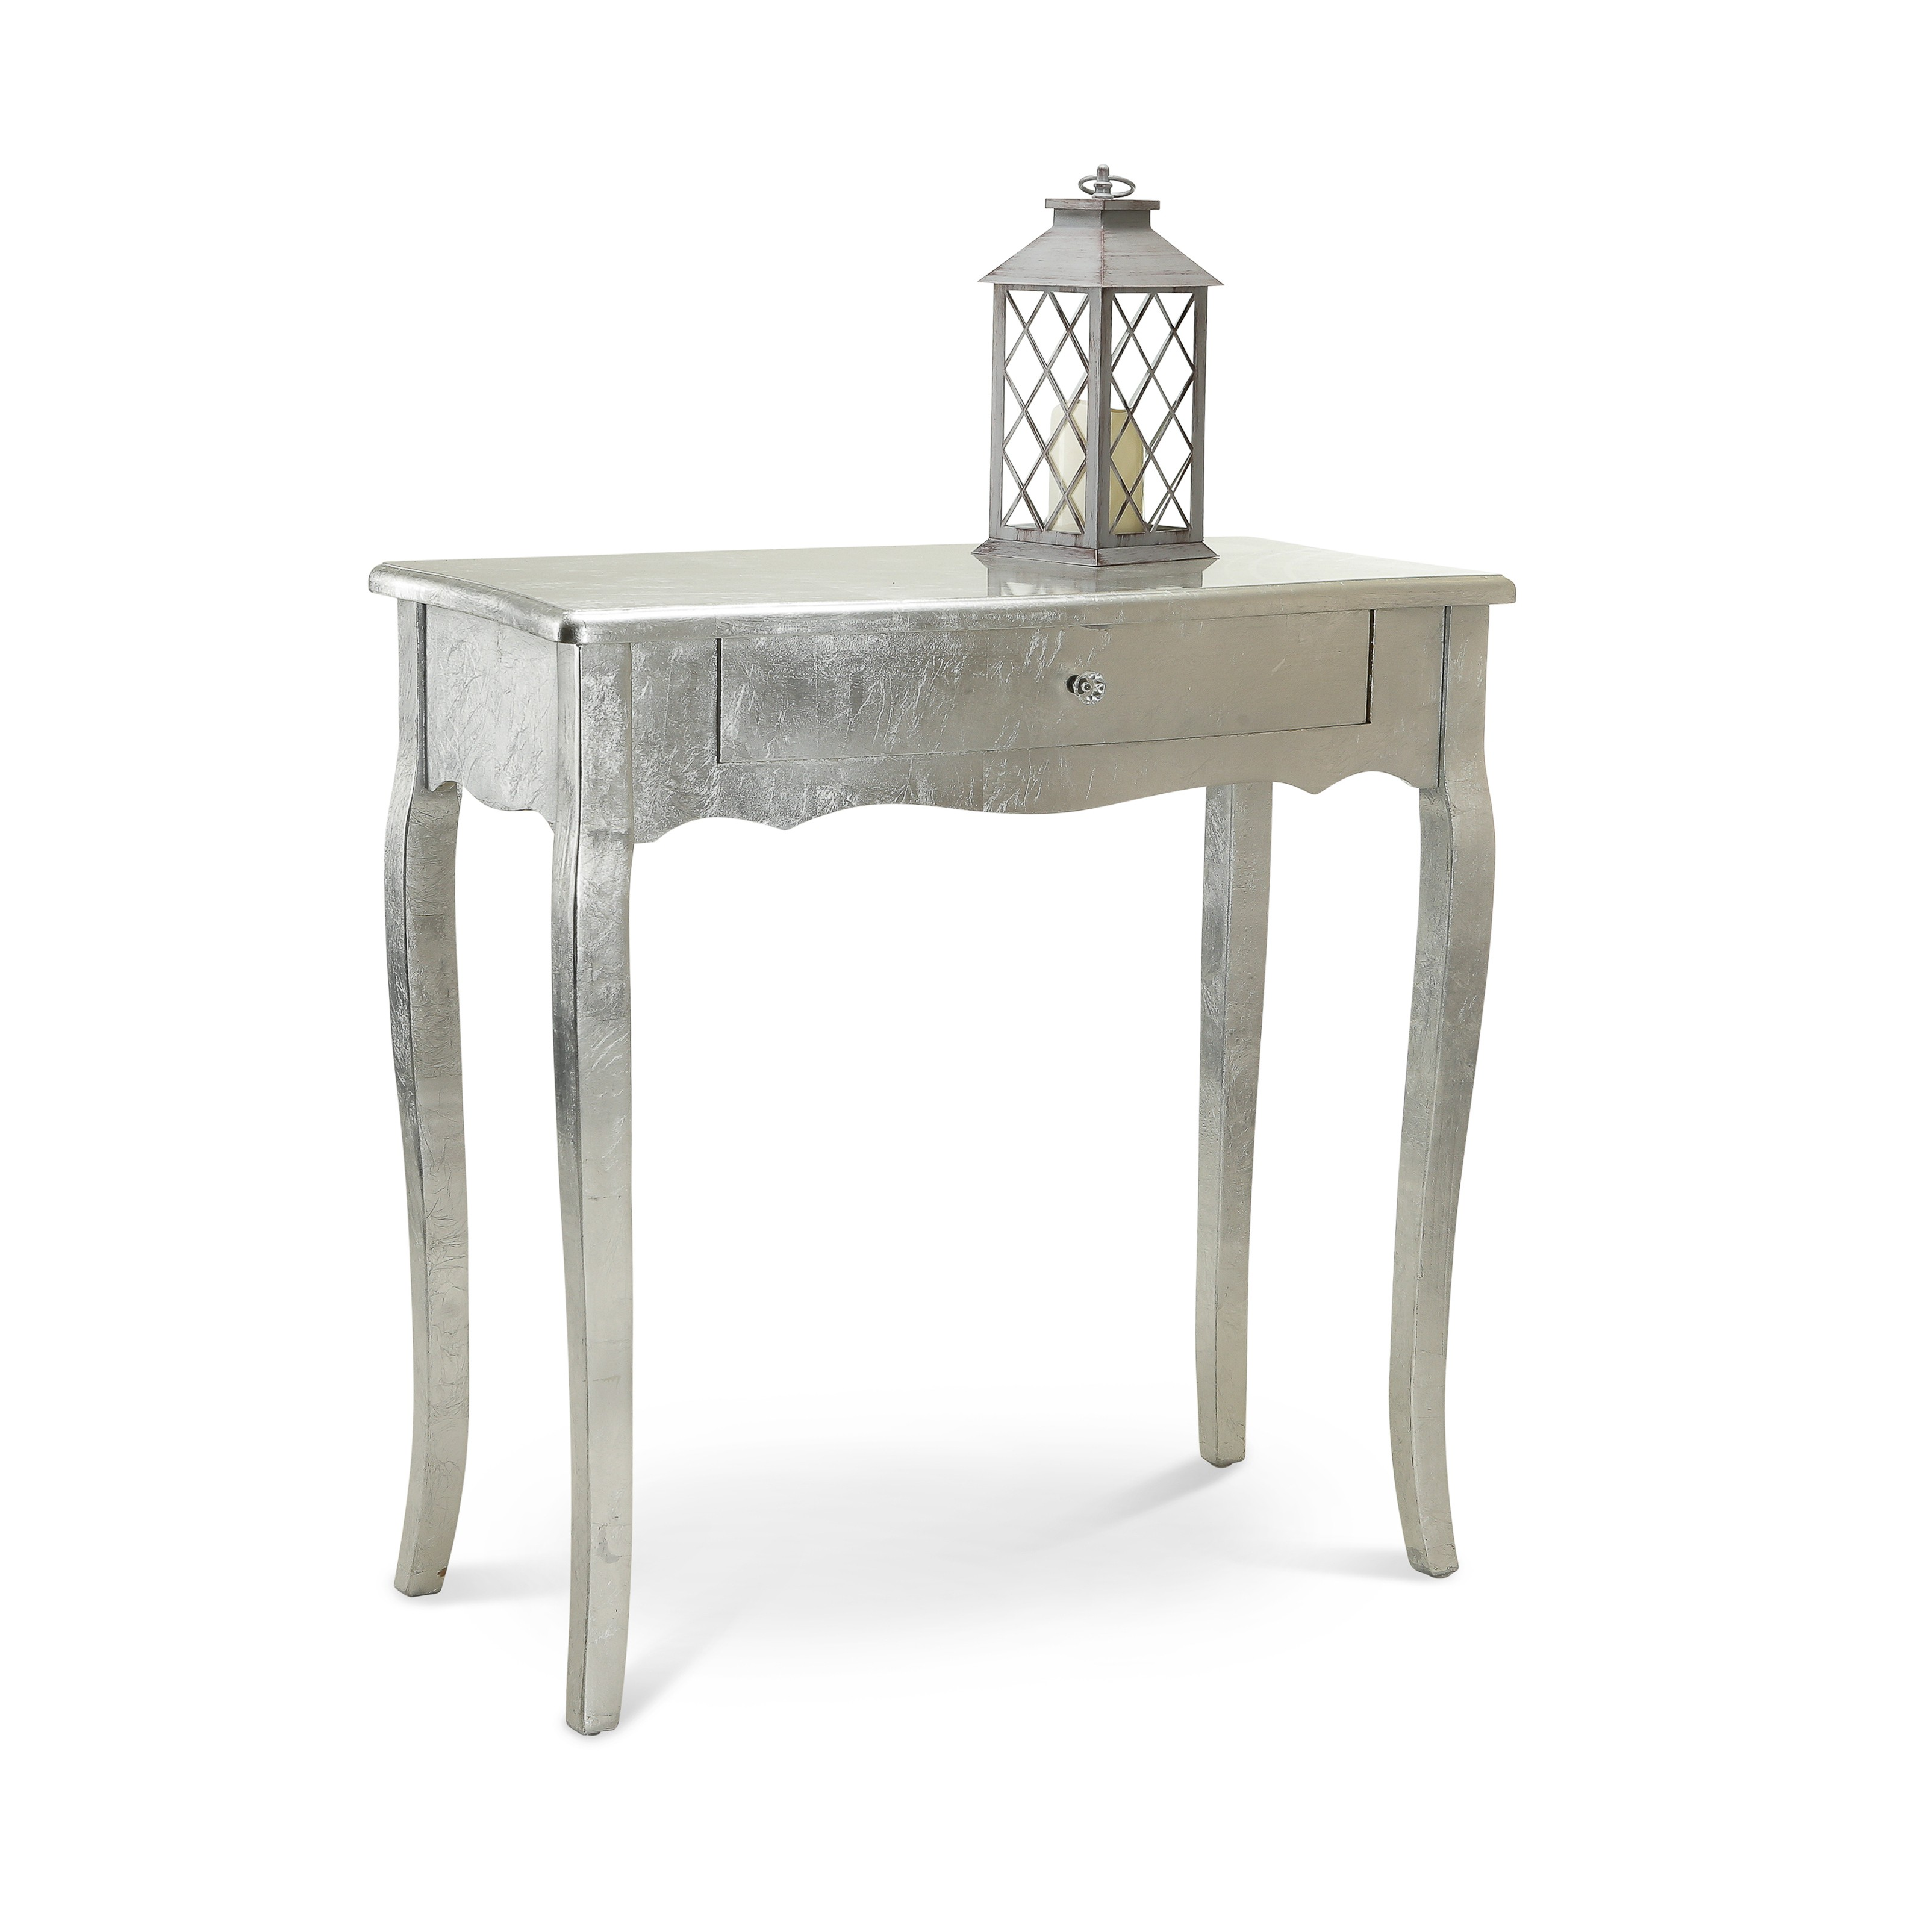 probably terrific best the rustic teal end table tures shabby chic console mirrored tables entry skinny hall consoles with drawers half moon lucite cons furniture foyer demilune